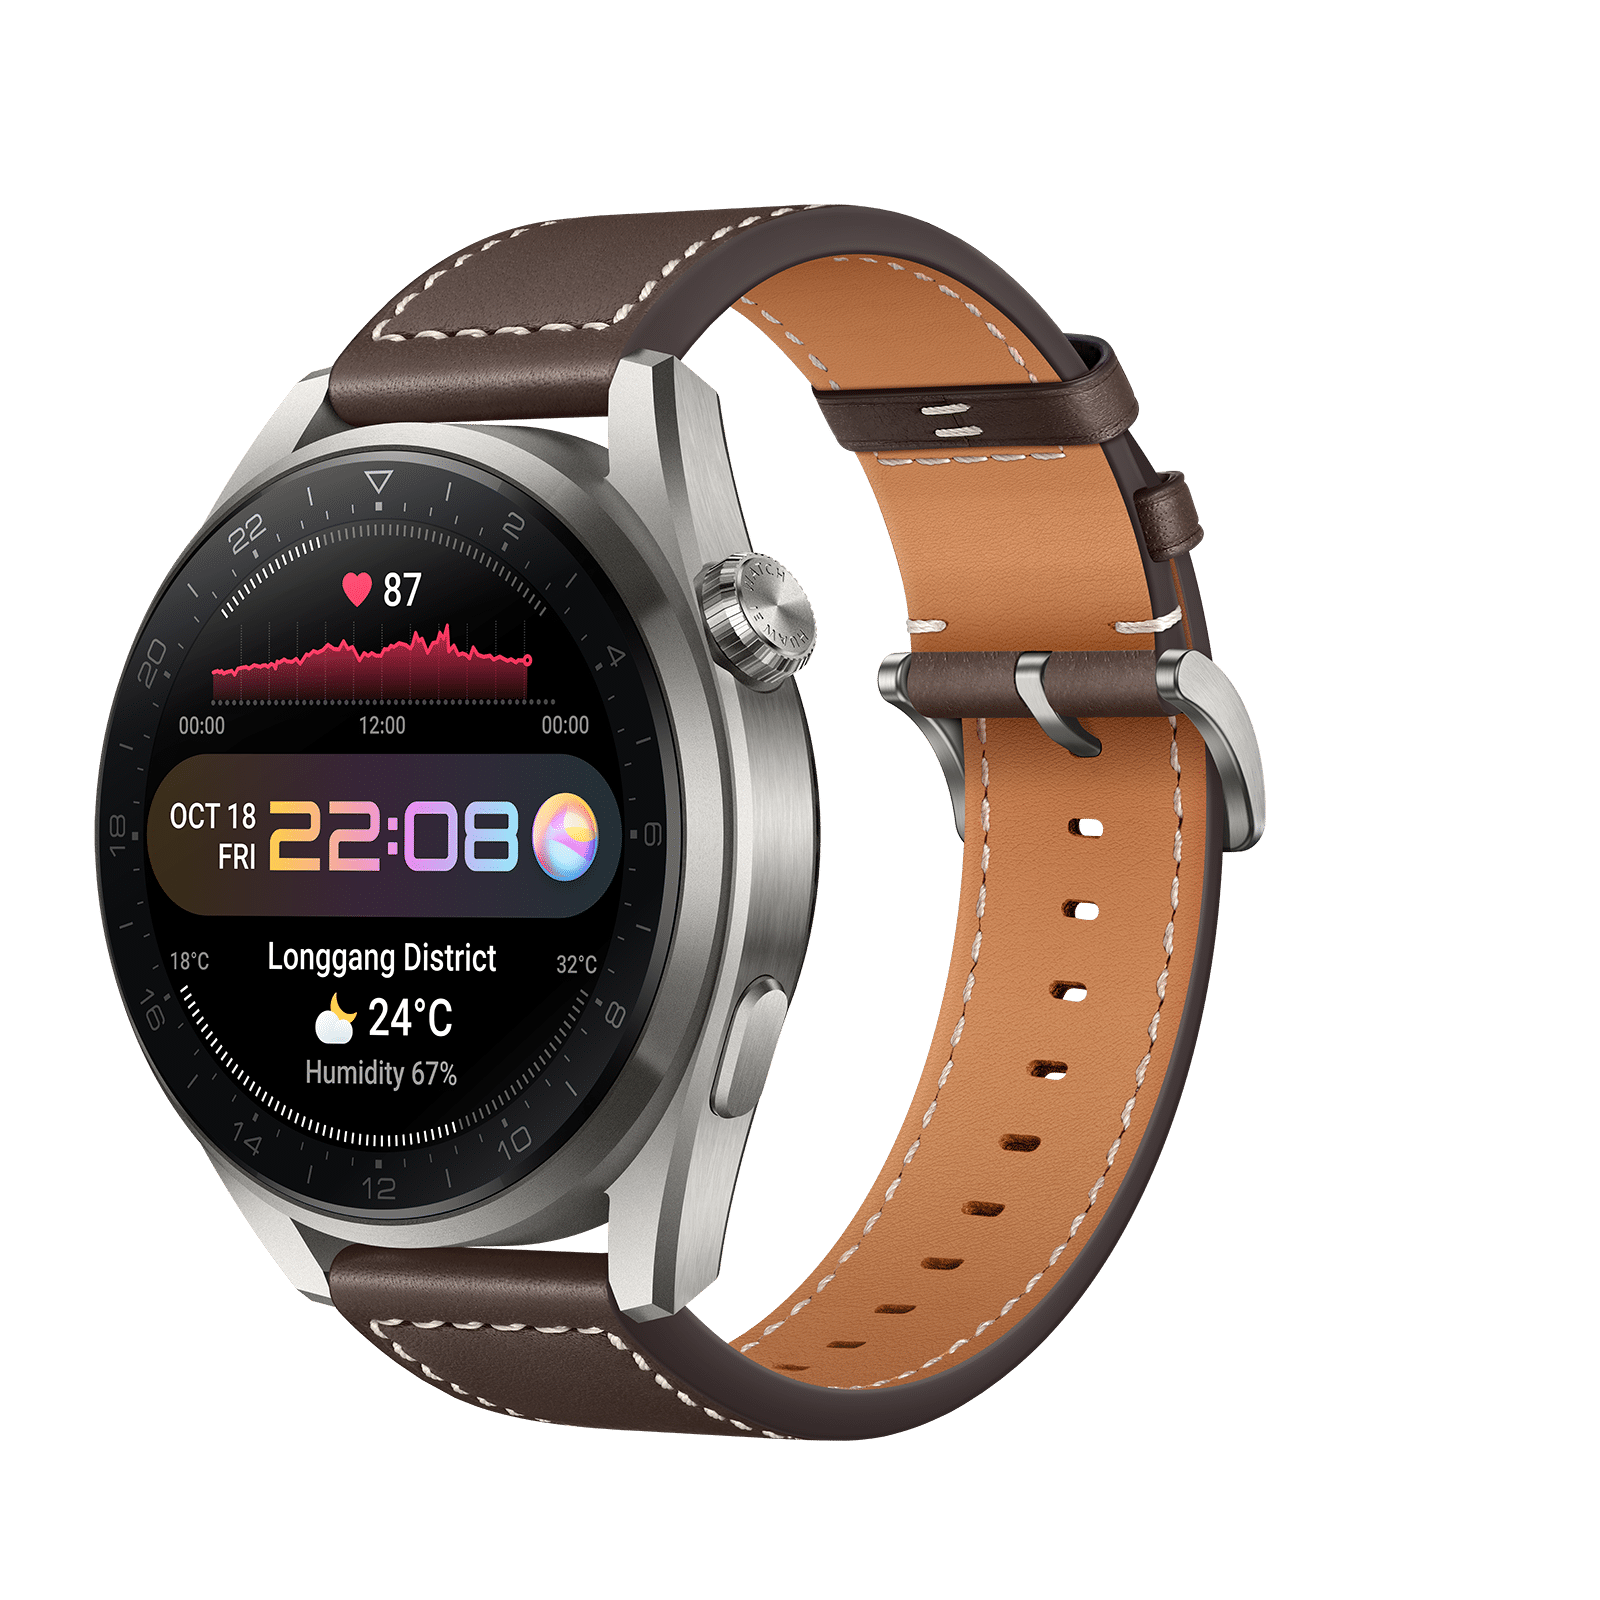 HUAWEI WATCH 3 Series, HUAWEI Vision S, HUAWEI FreeBuds 4 are now available